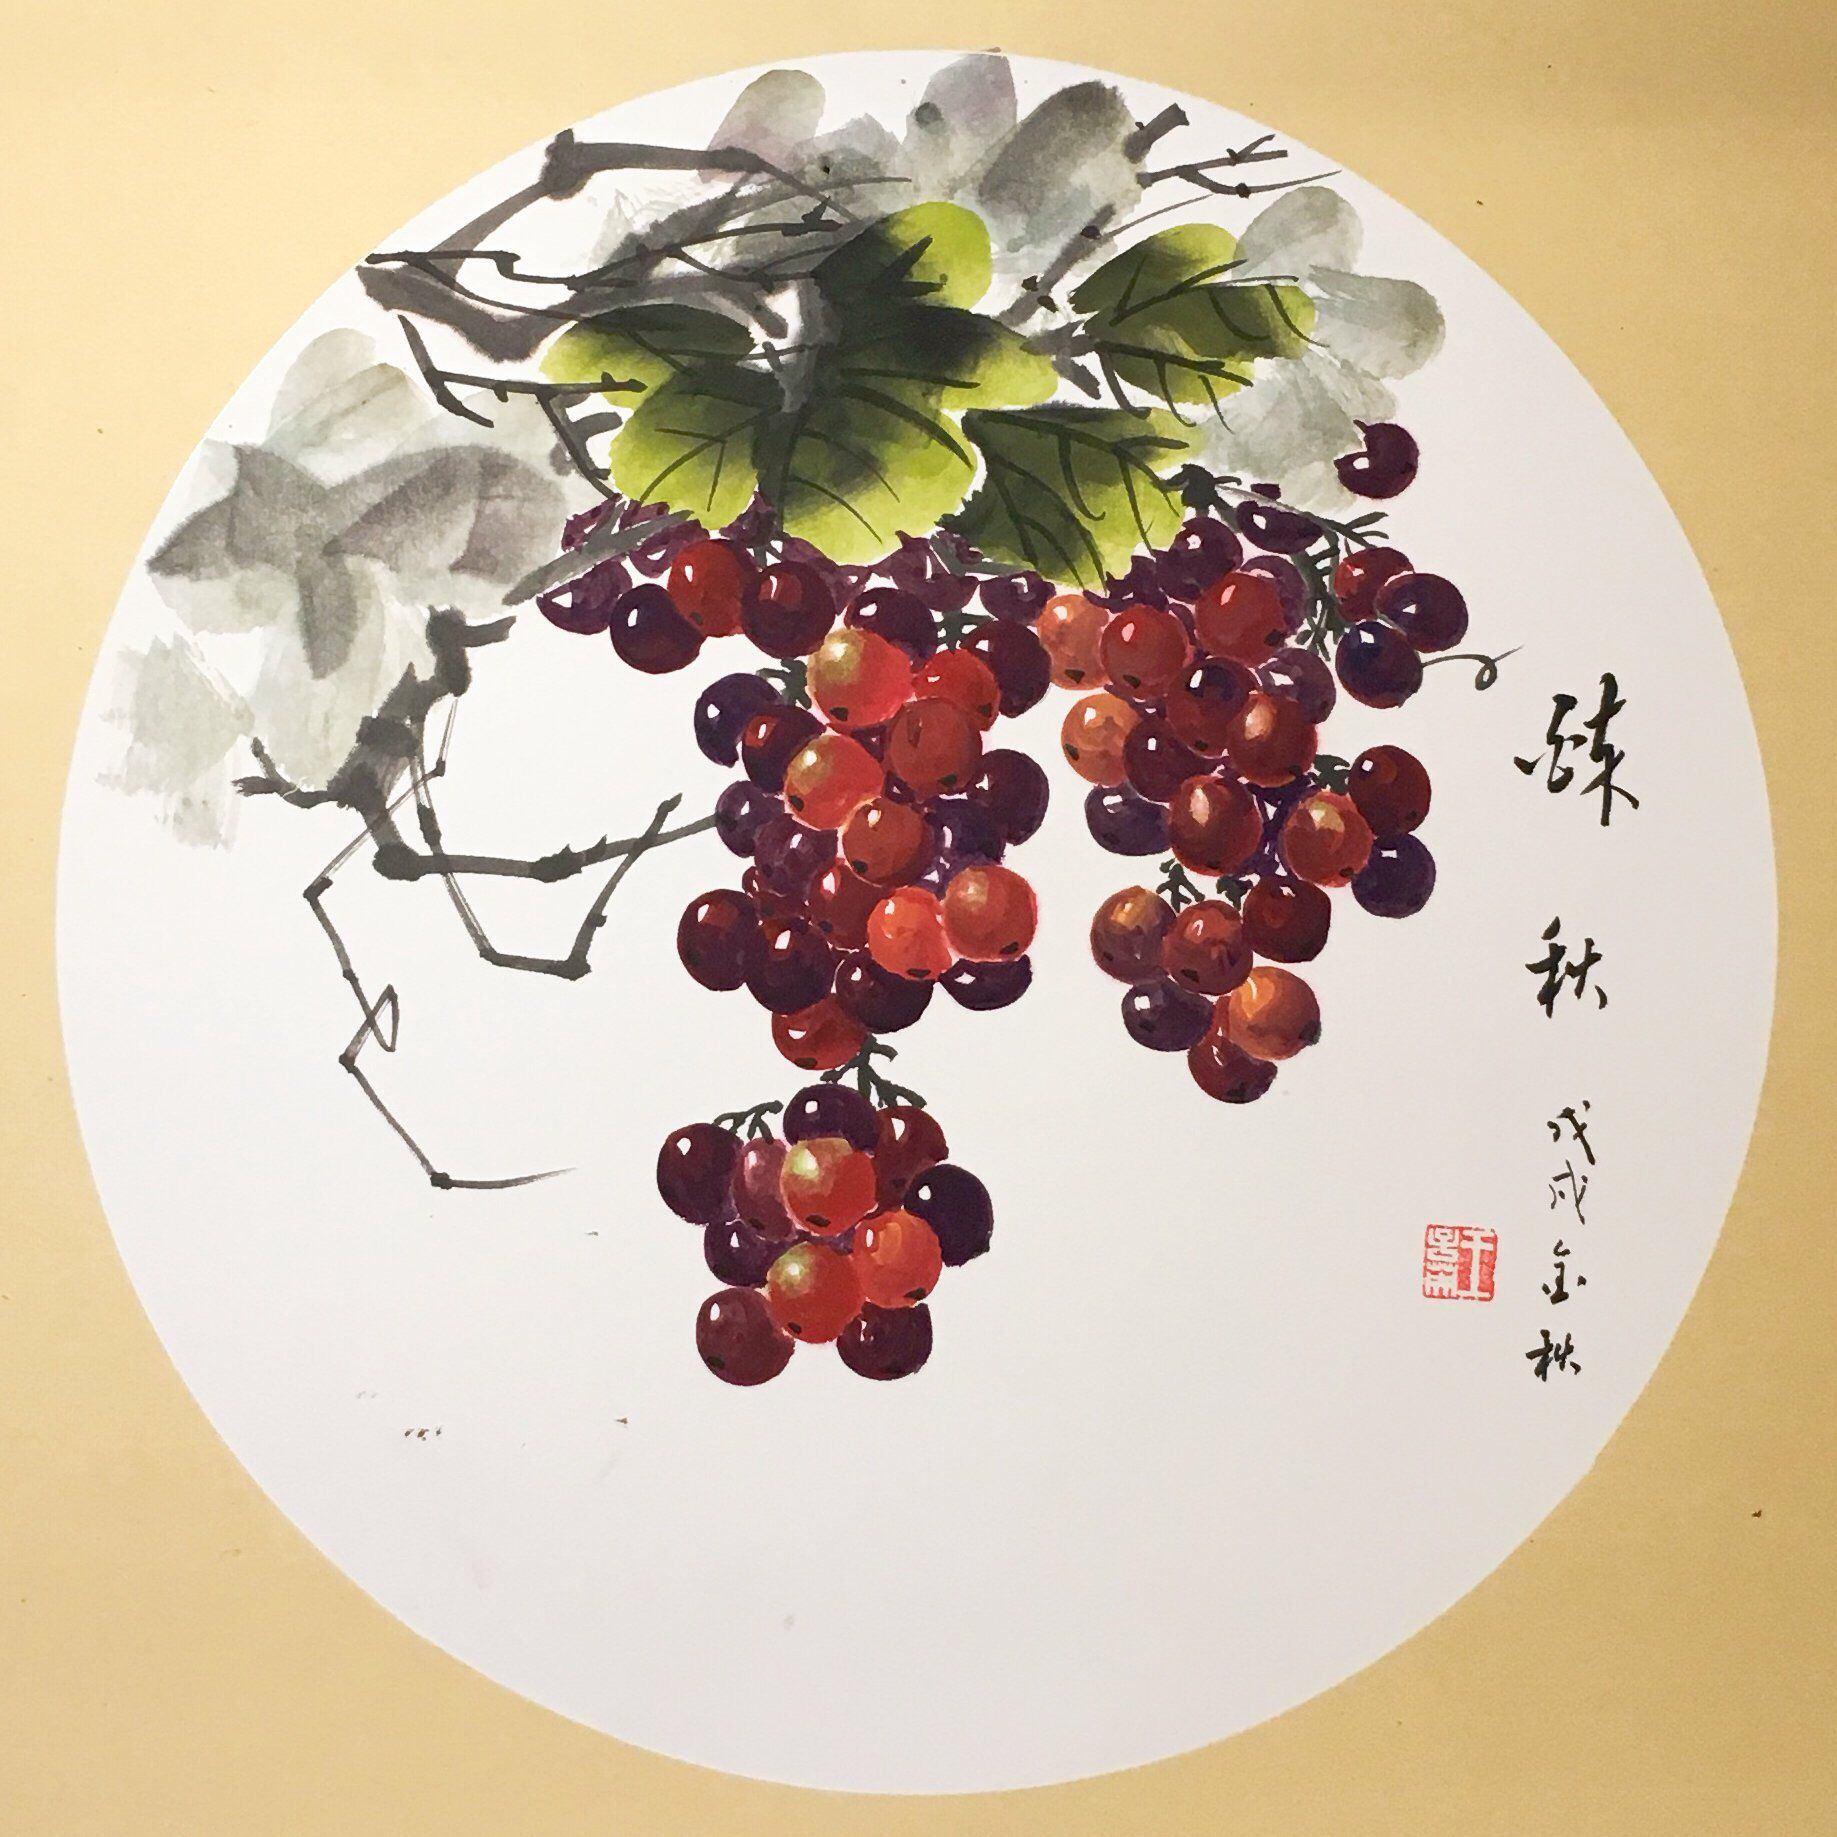 Chinese Painting Original Grape And Vine Works Wall Decorations Chinese Painting Mounting Board Chi Chinese Painting Original Paintings Chinese Brush Painting